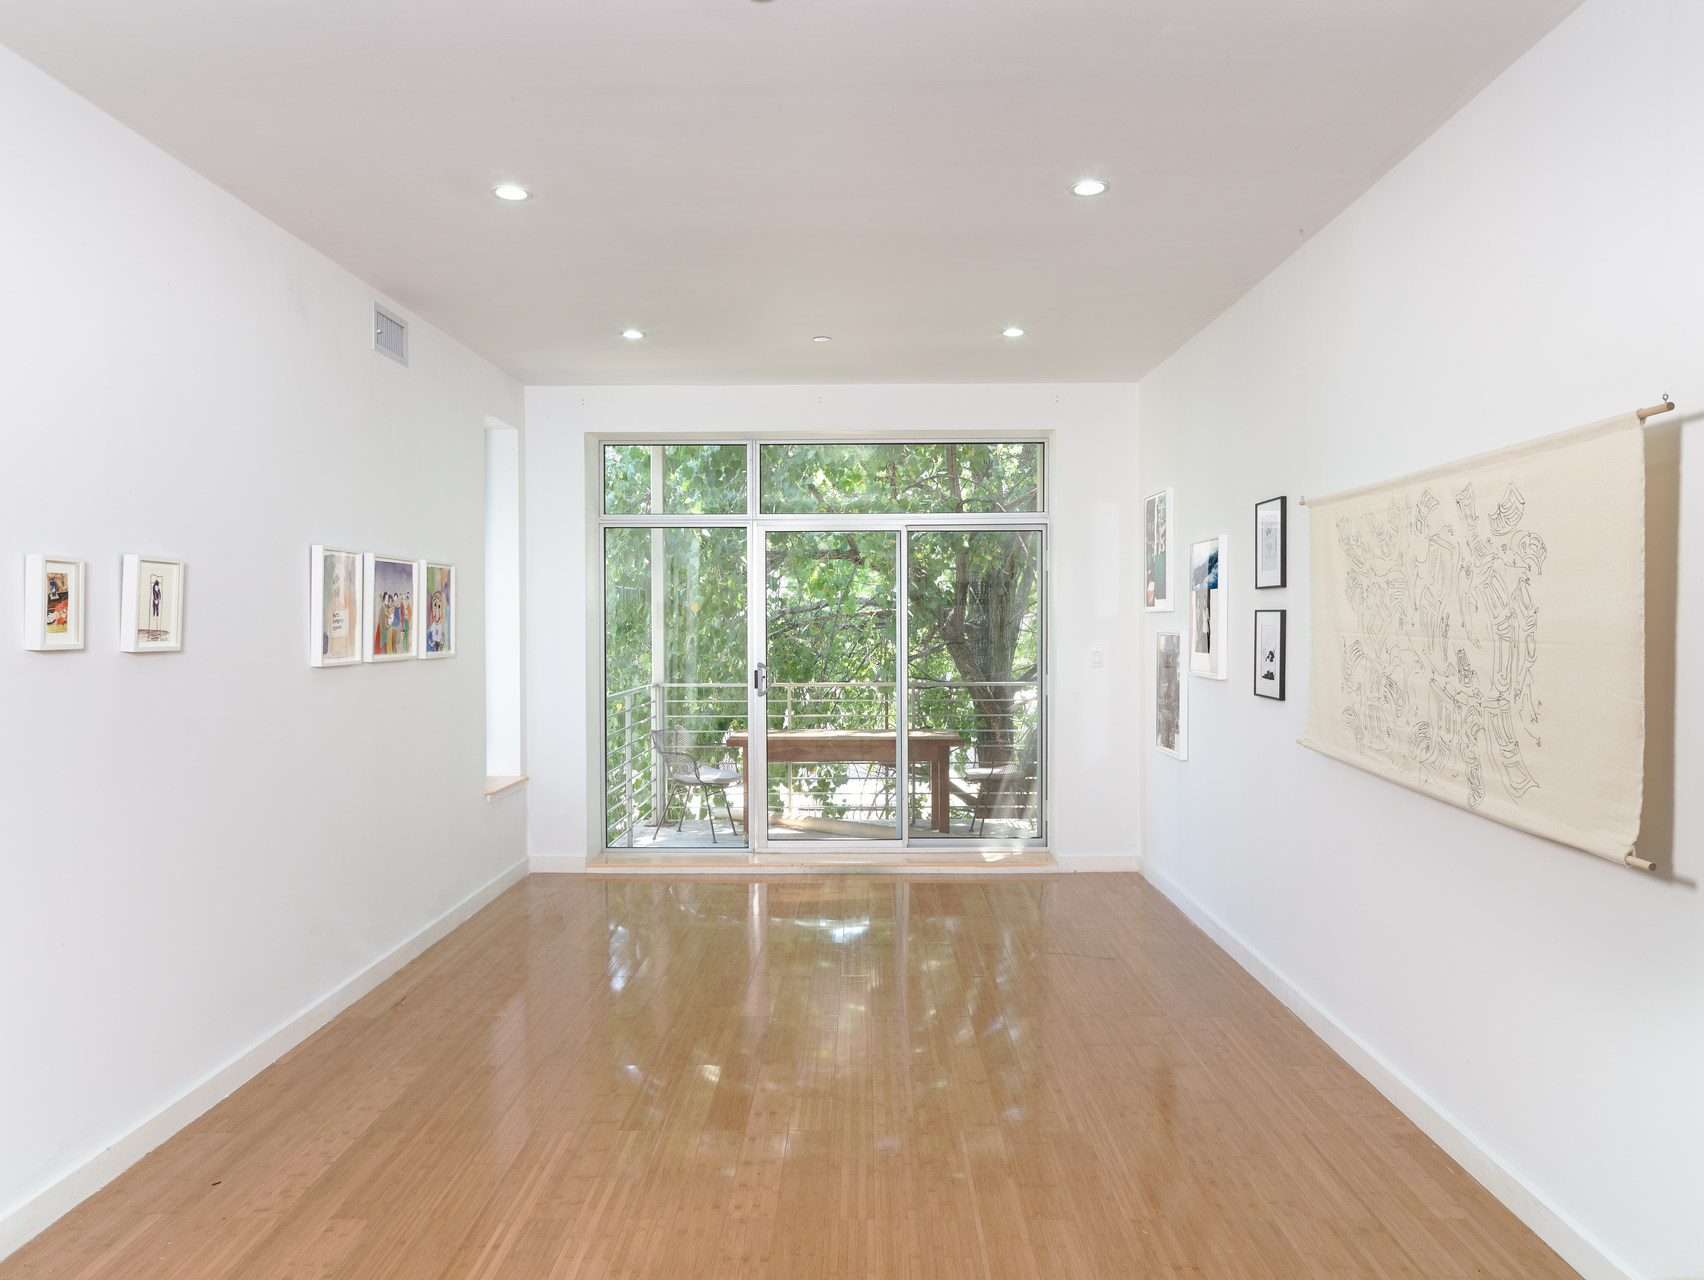 1 - Installation View